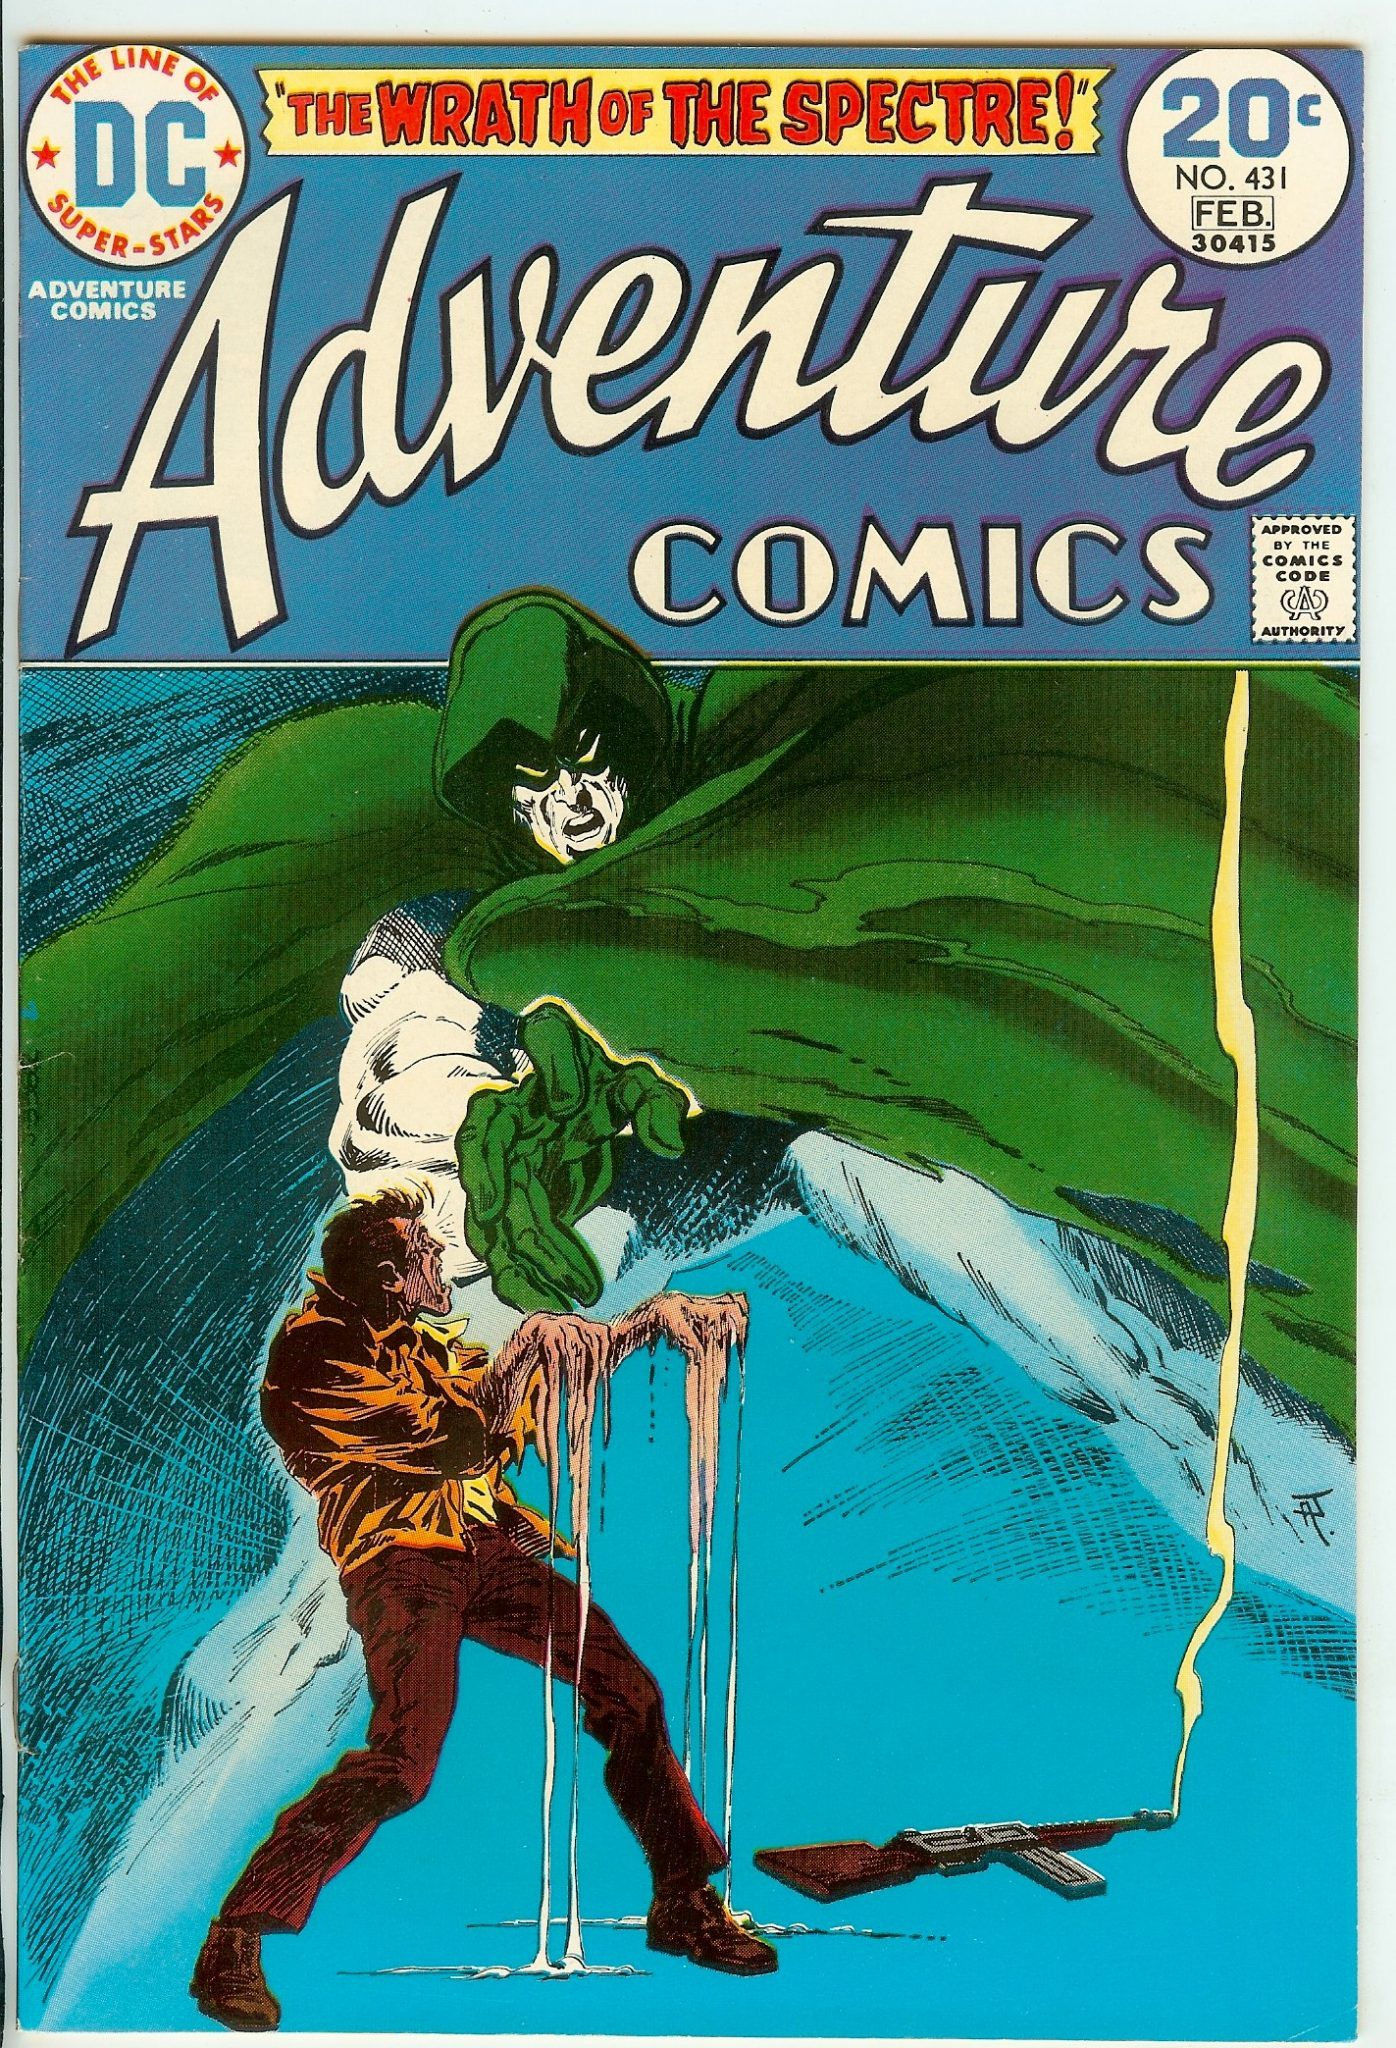 Adventure Comics #431 cover by Jim Aparo